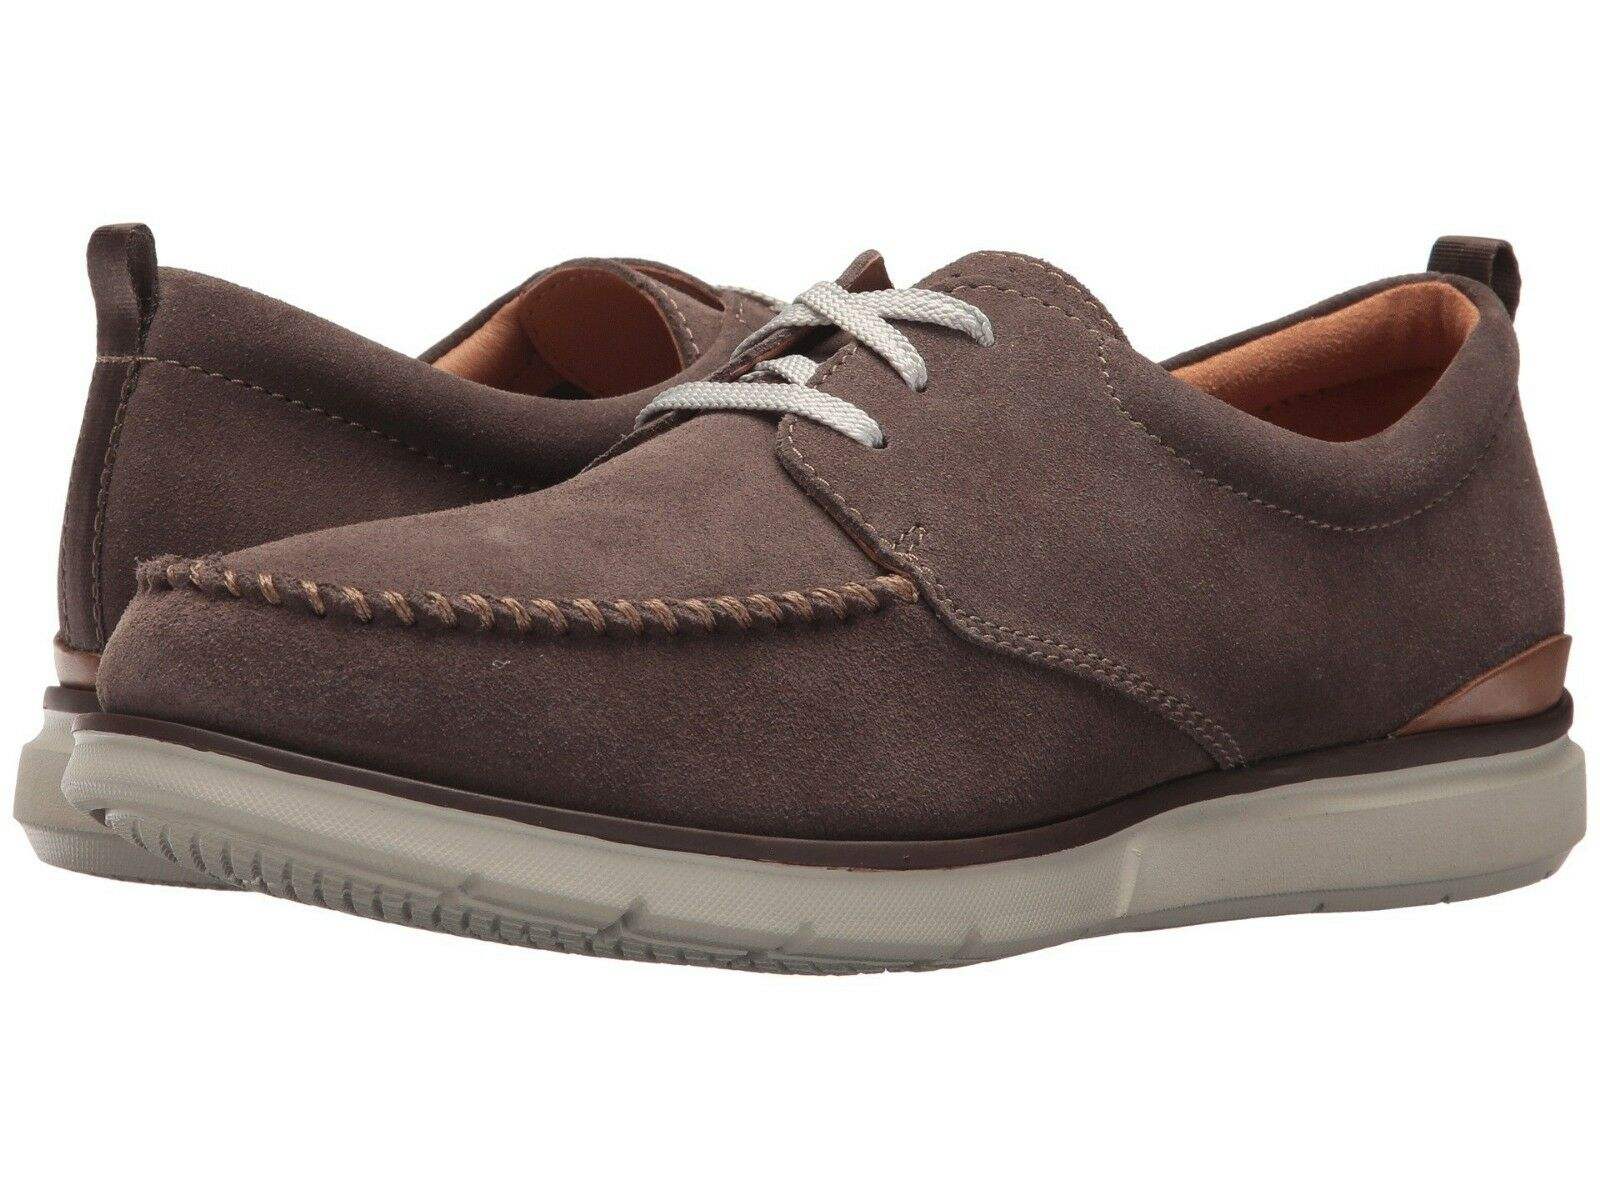 Men's Shoes Clarks Edgewood Mix Casual Lace Up 31734 Taupe Suede *New*